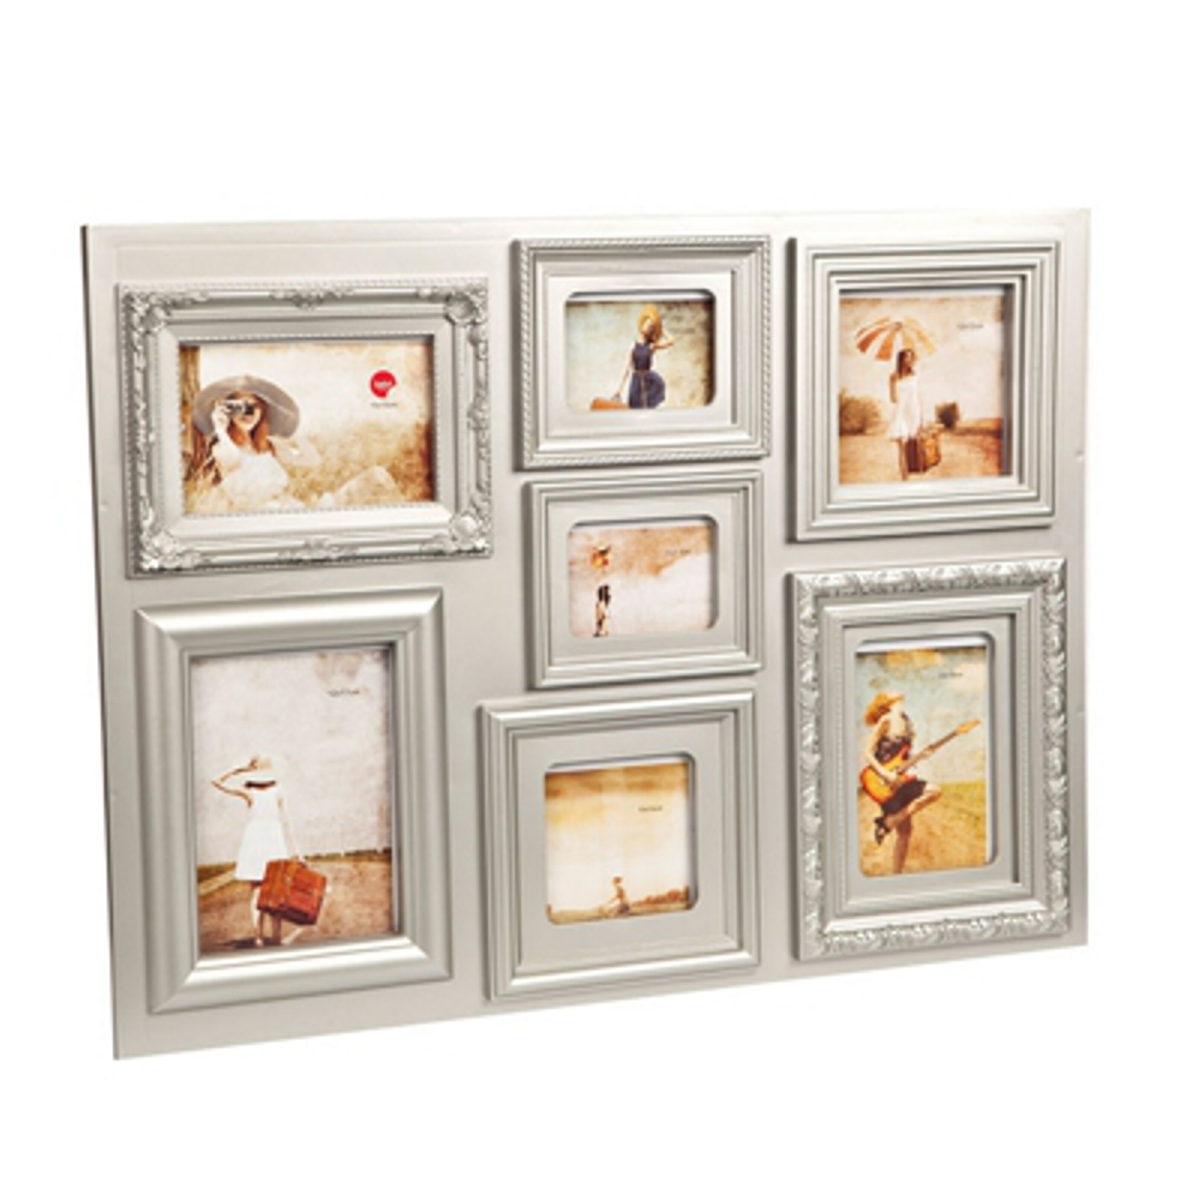 11 oz. All Surface Metallic Satin Oil Rubbed Bronze Red multi aperture photo frame